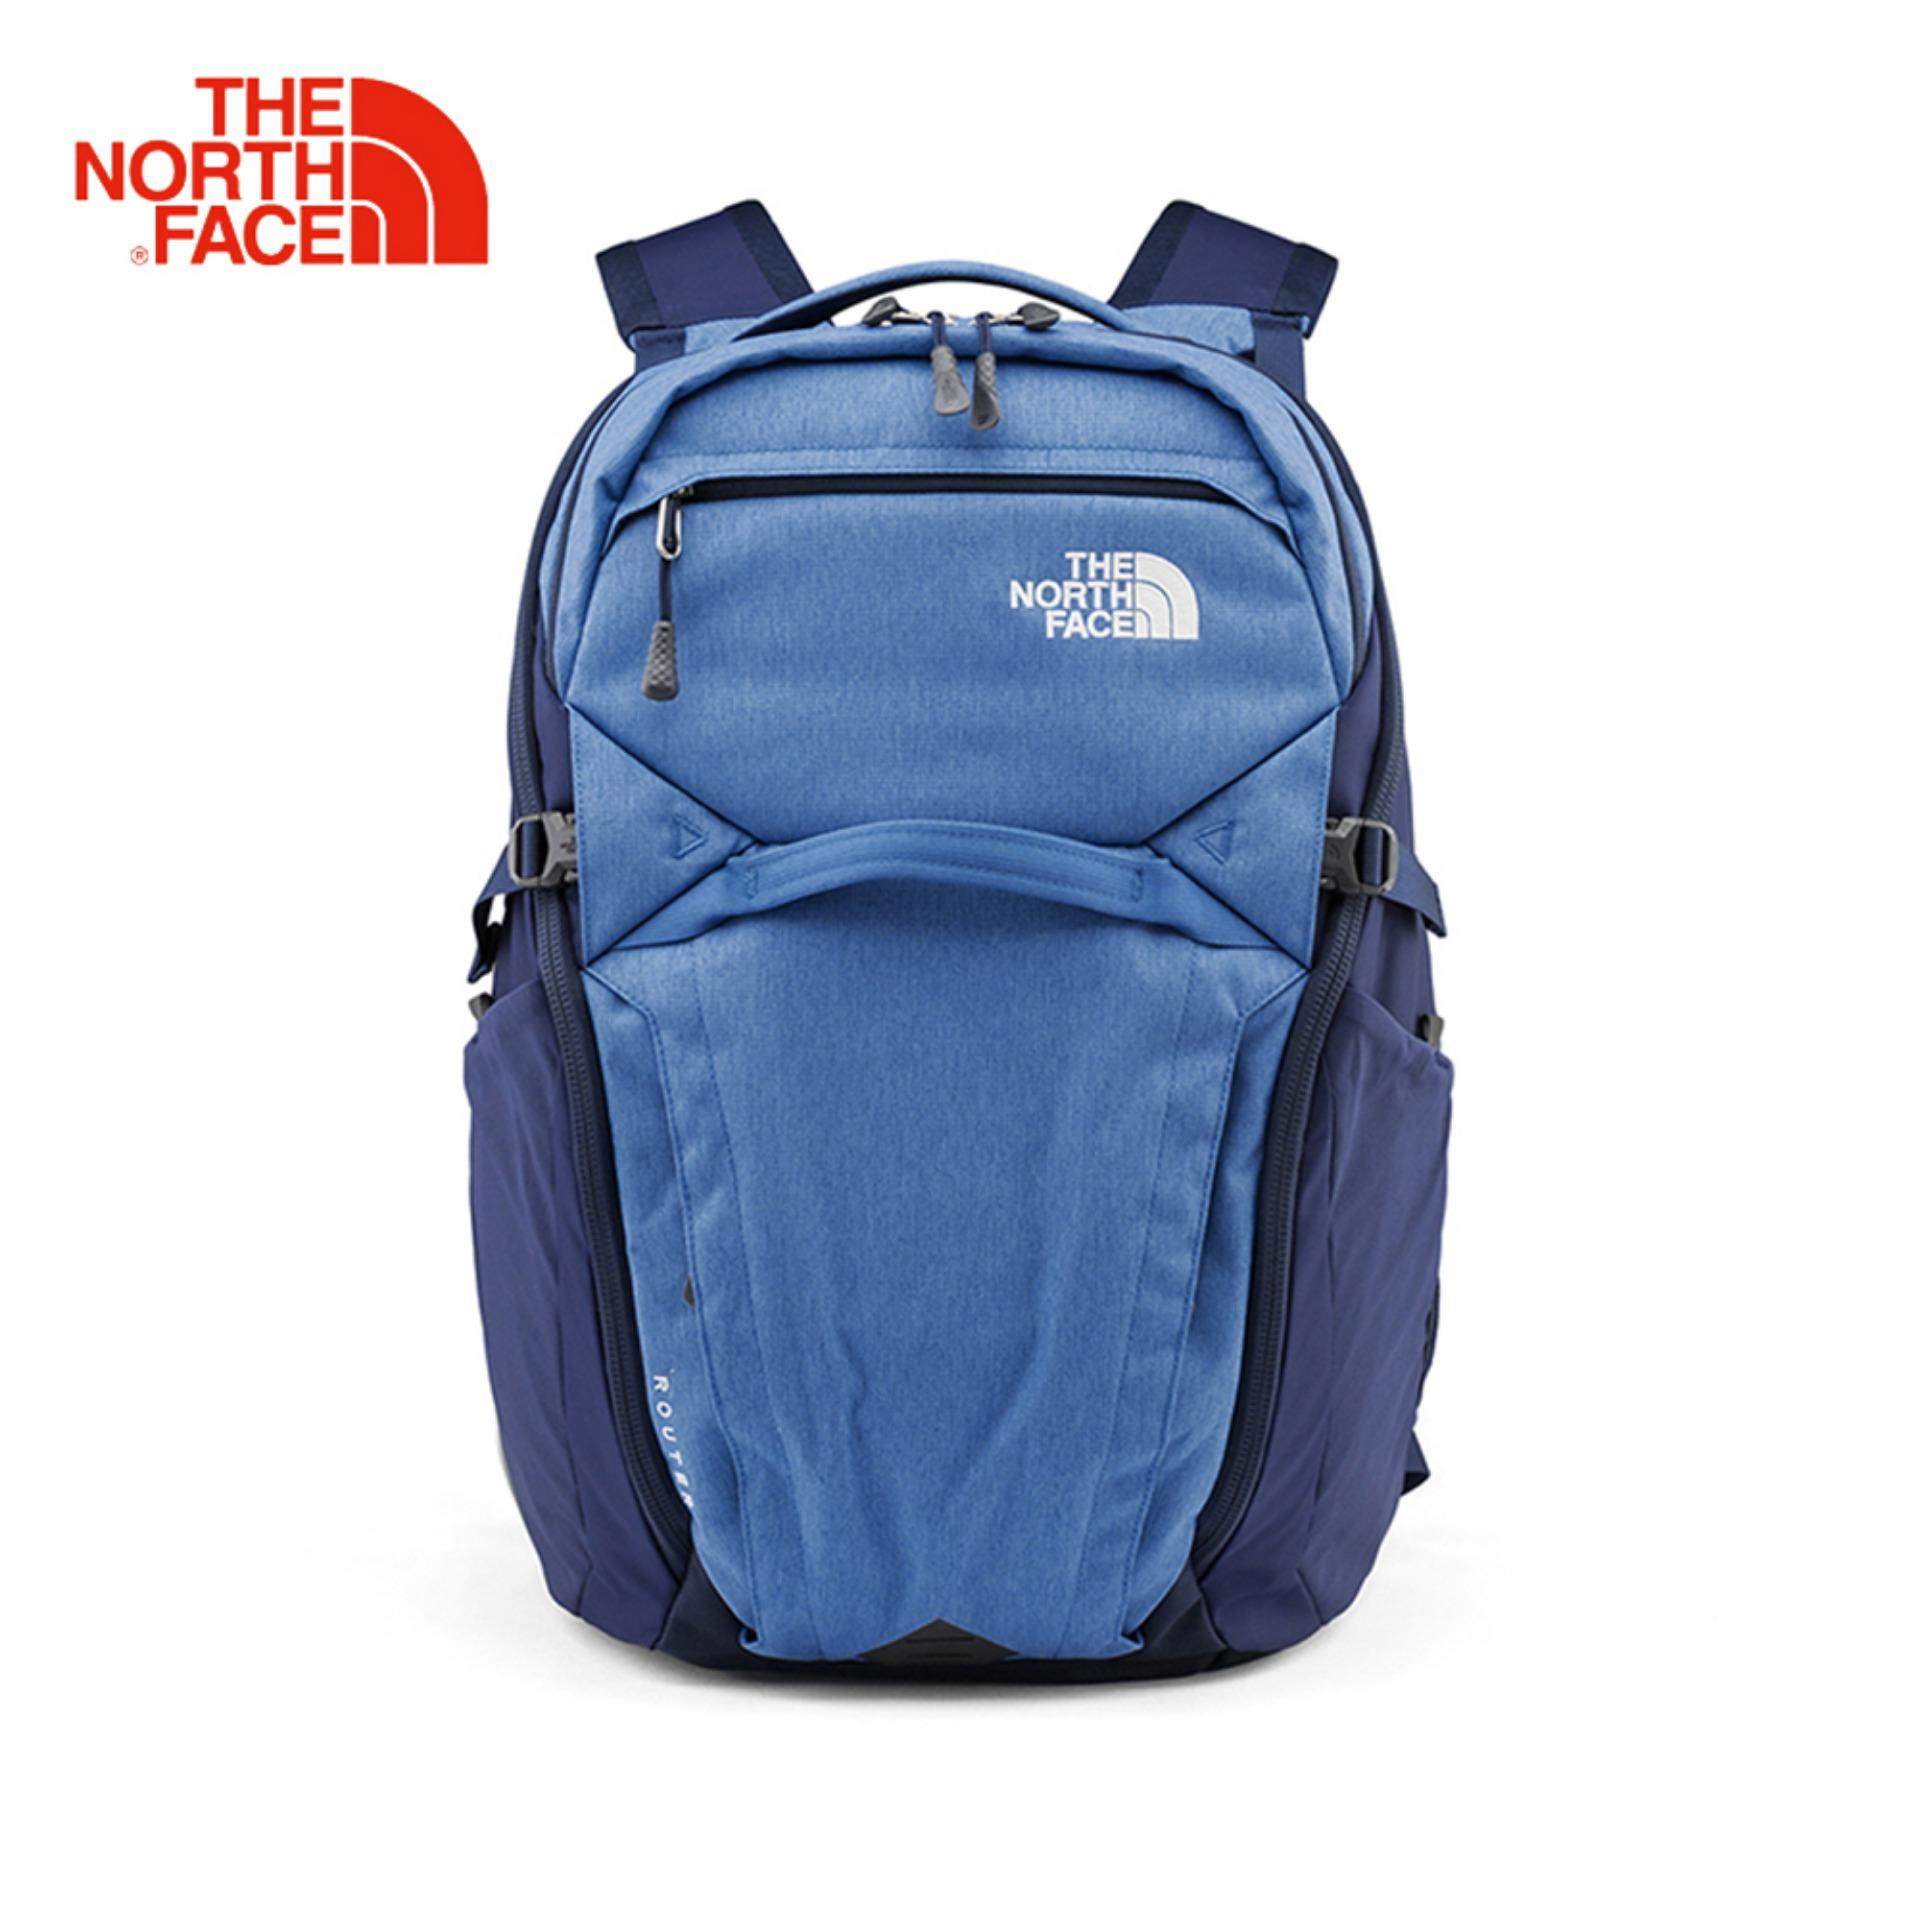 aa5e75926 The North Face Router 40L Comfortable FlexVent™ Laptop Tablet Book  Reflective Back Pack